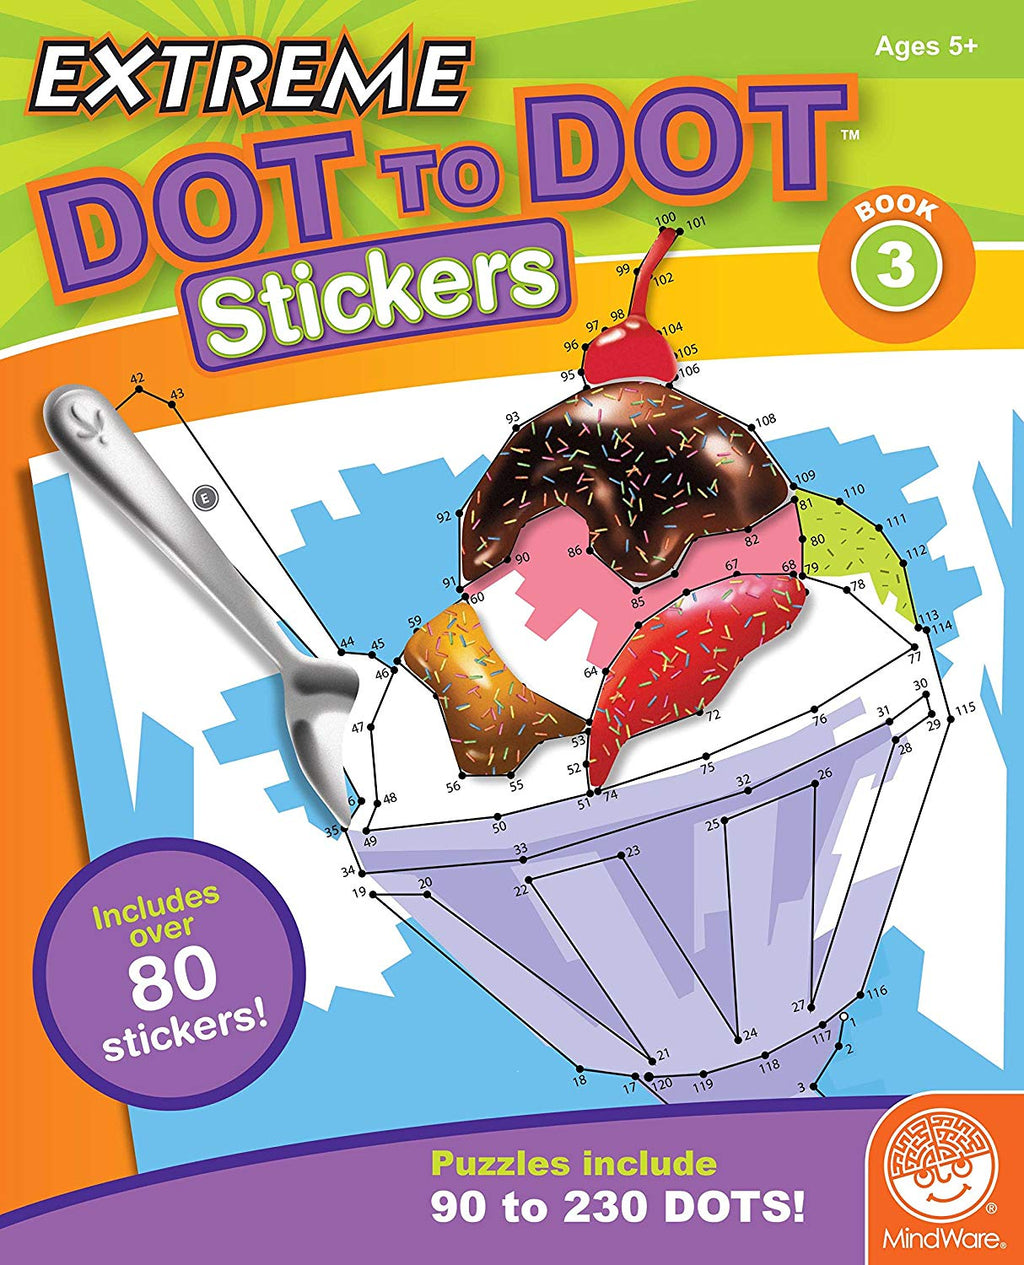 MindWare - MB-19230 | Extreme Dot to Dot Stickers: Book 3